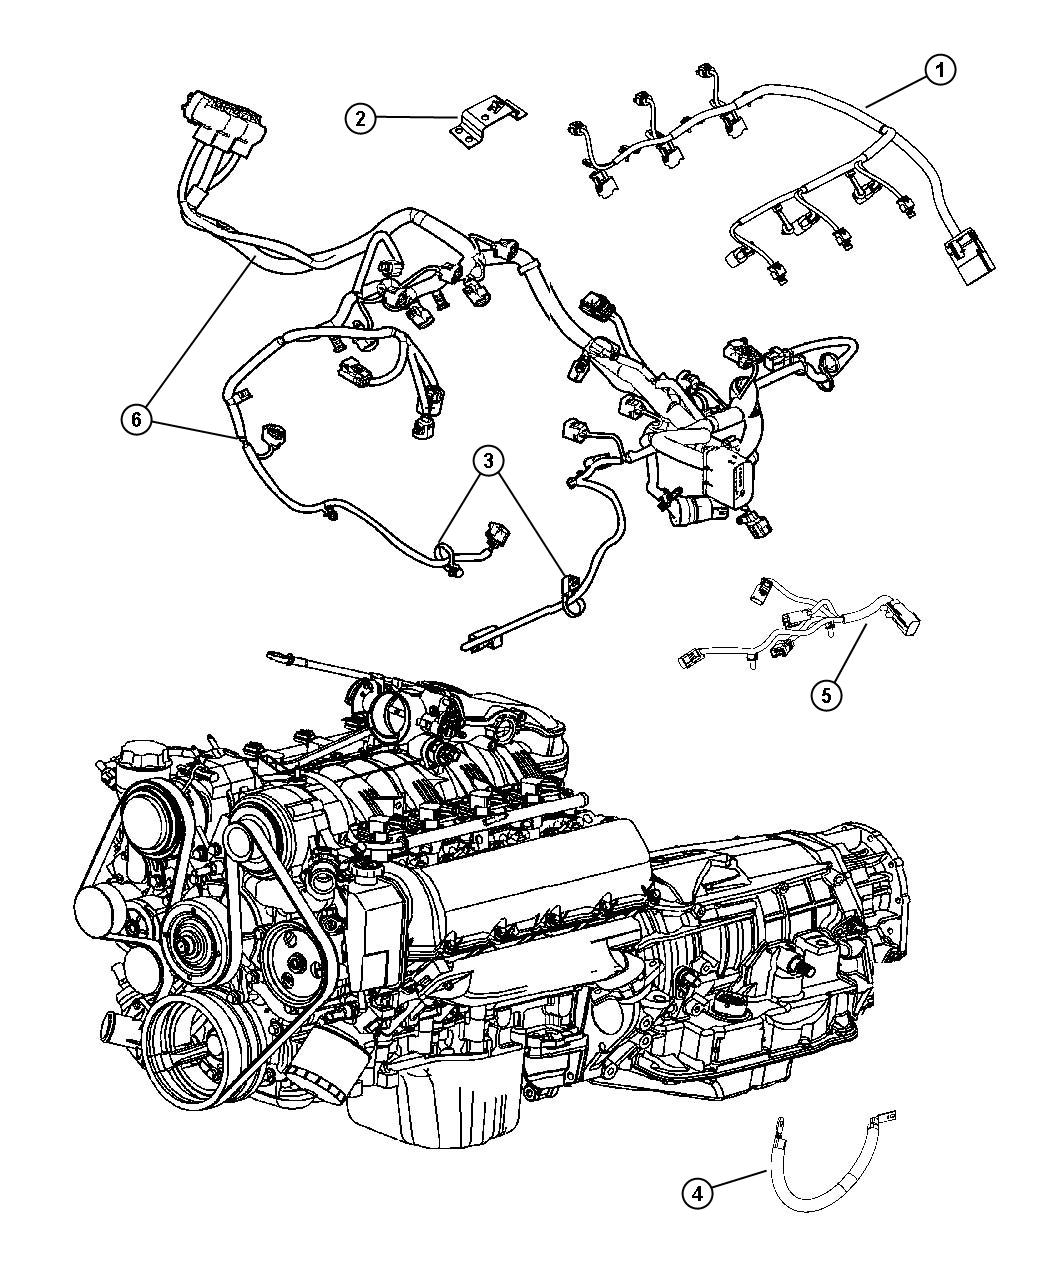 Jeep Grand Cherokee Wiring. Engine. Powertrain, mopar, gas